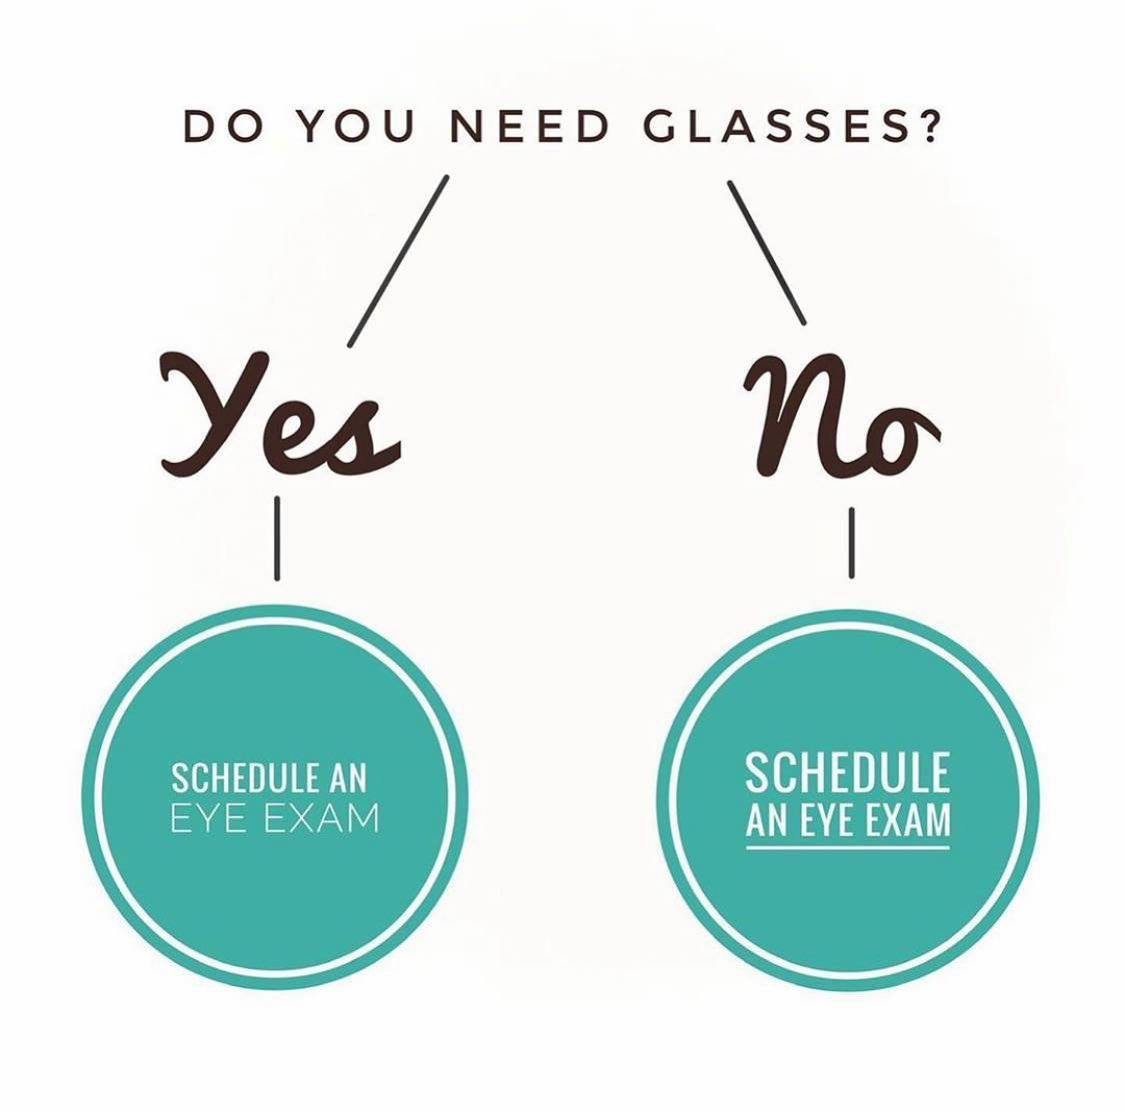 It's always the right time to book an eye exam! We have weekday, evening and weekend appointments at both our offices. Whether it's just a routine visit or you have a concern, we always have time to see you! #eyepractice #rockwoodoptometry #guelphoptometry #rockwoodoptometrist #guelphoptometrist #eyeexam